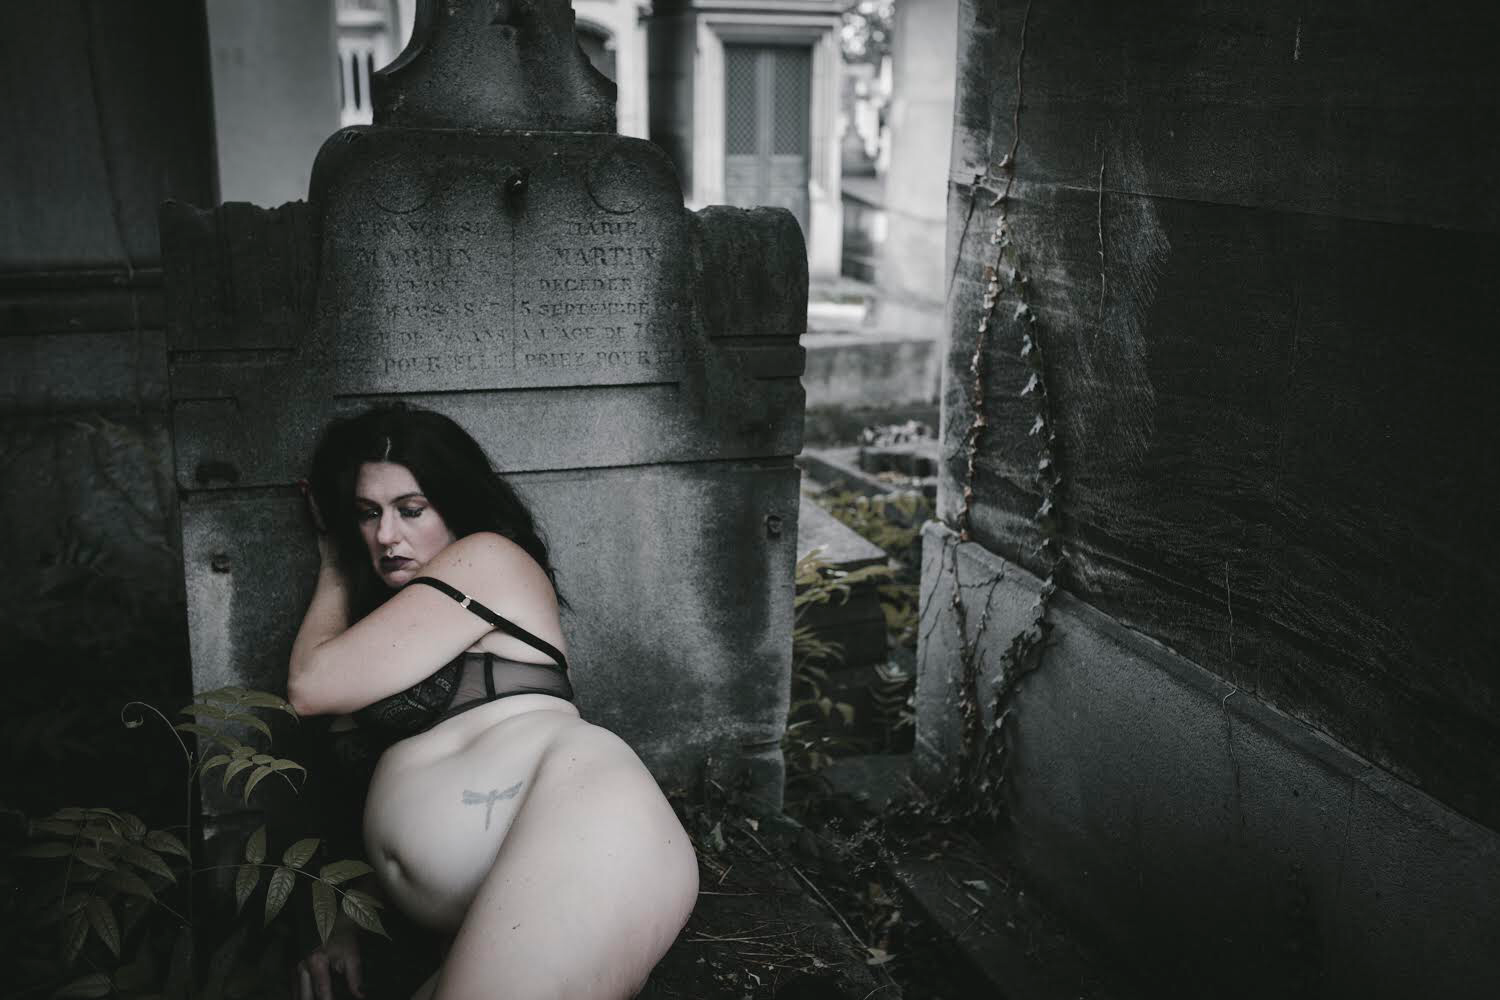 A slightly desaturated photograph of a pregnant person laying against an old, waterstained grey headstone in a cemetery. More cemetery scenery and some ivy on a wall are visible nearby. The person has long, dark hair and is wearing dark lipstick and makeup. They are wearing a black structured bra, and have a dragonfly tattoo on their side. Their eyes are closed, and they are slumped on their right side, with their left hand under their head and their left bra strap down on their arm. To the left of them, a fern grows.